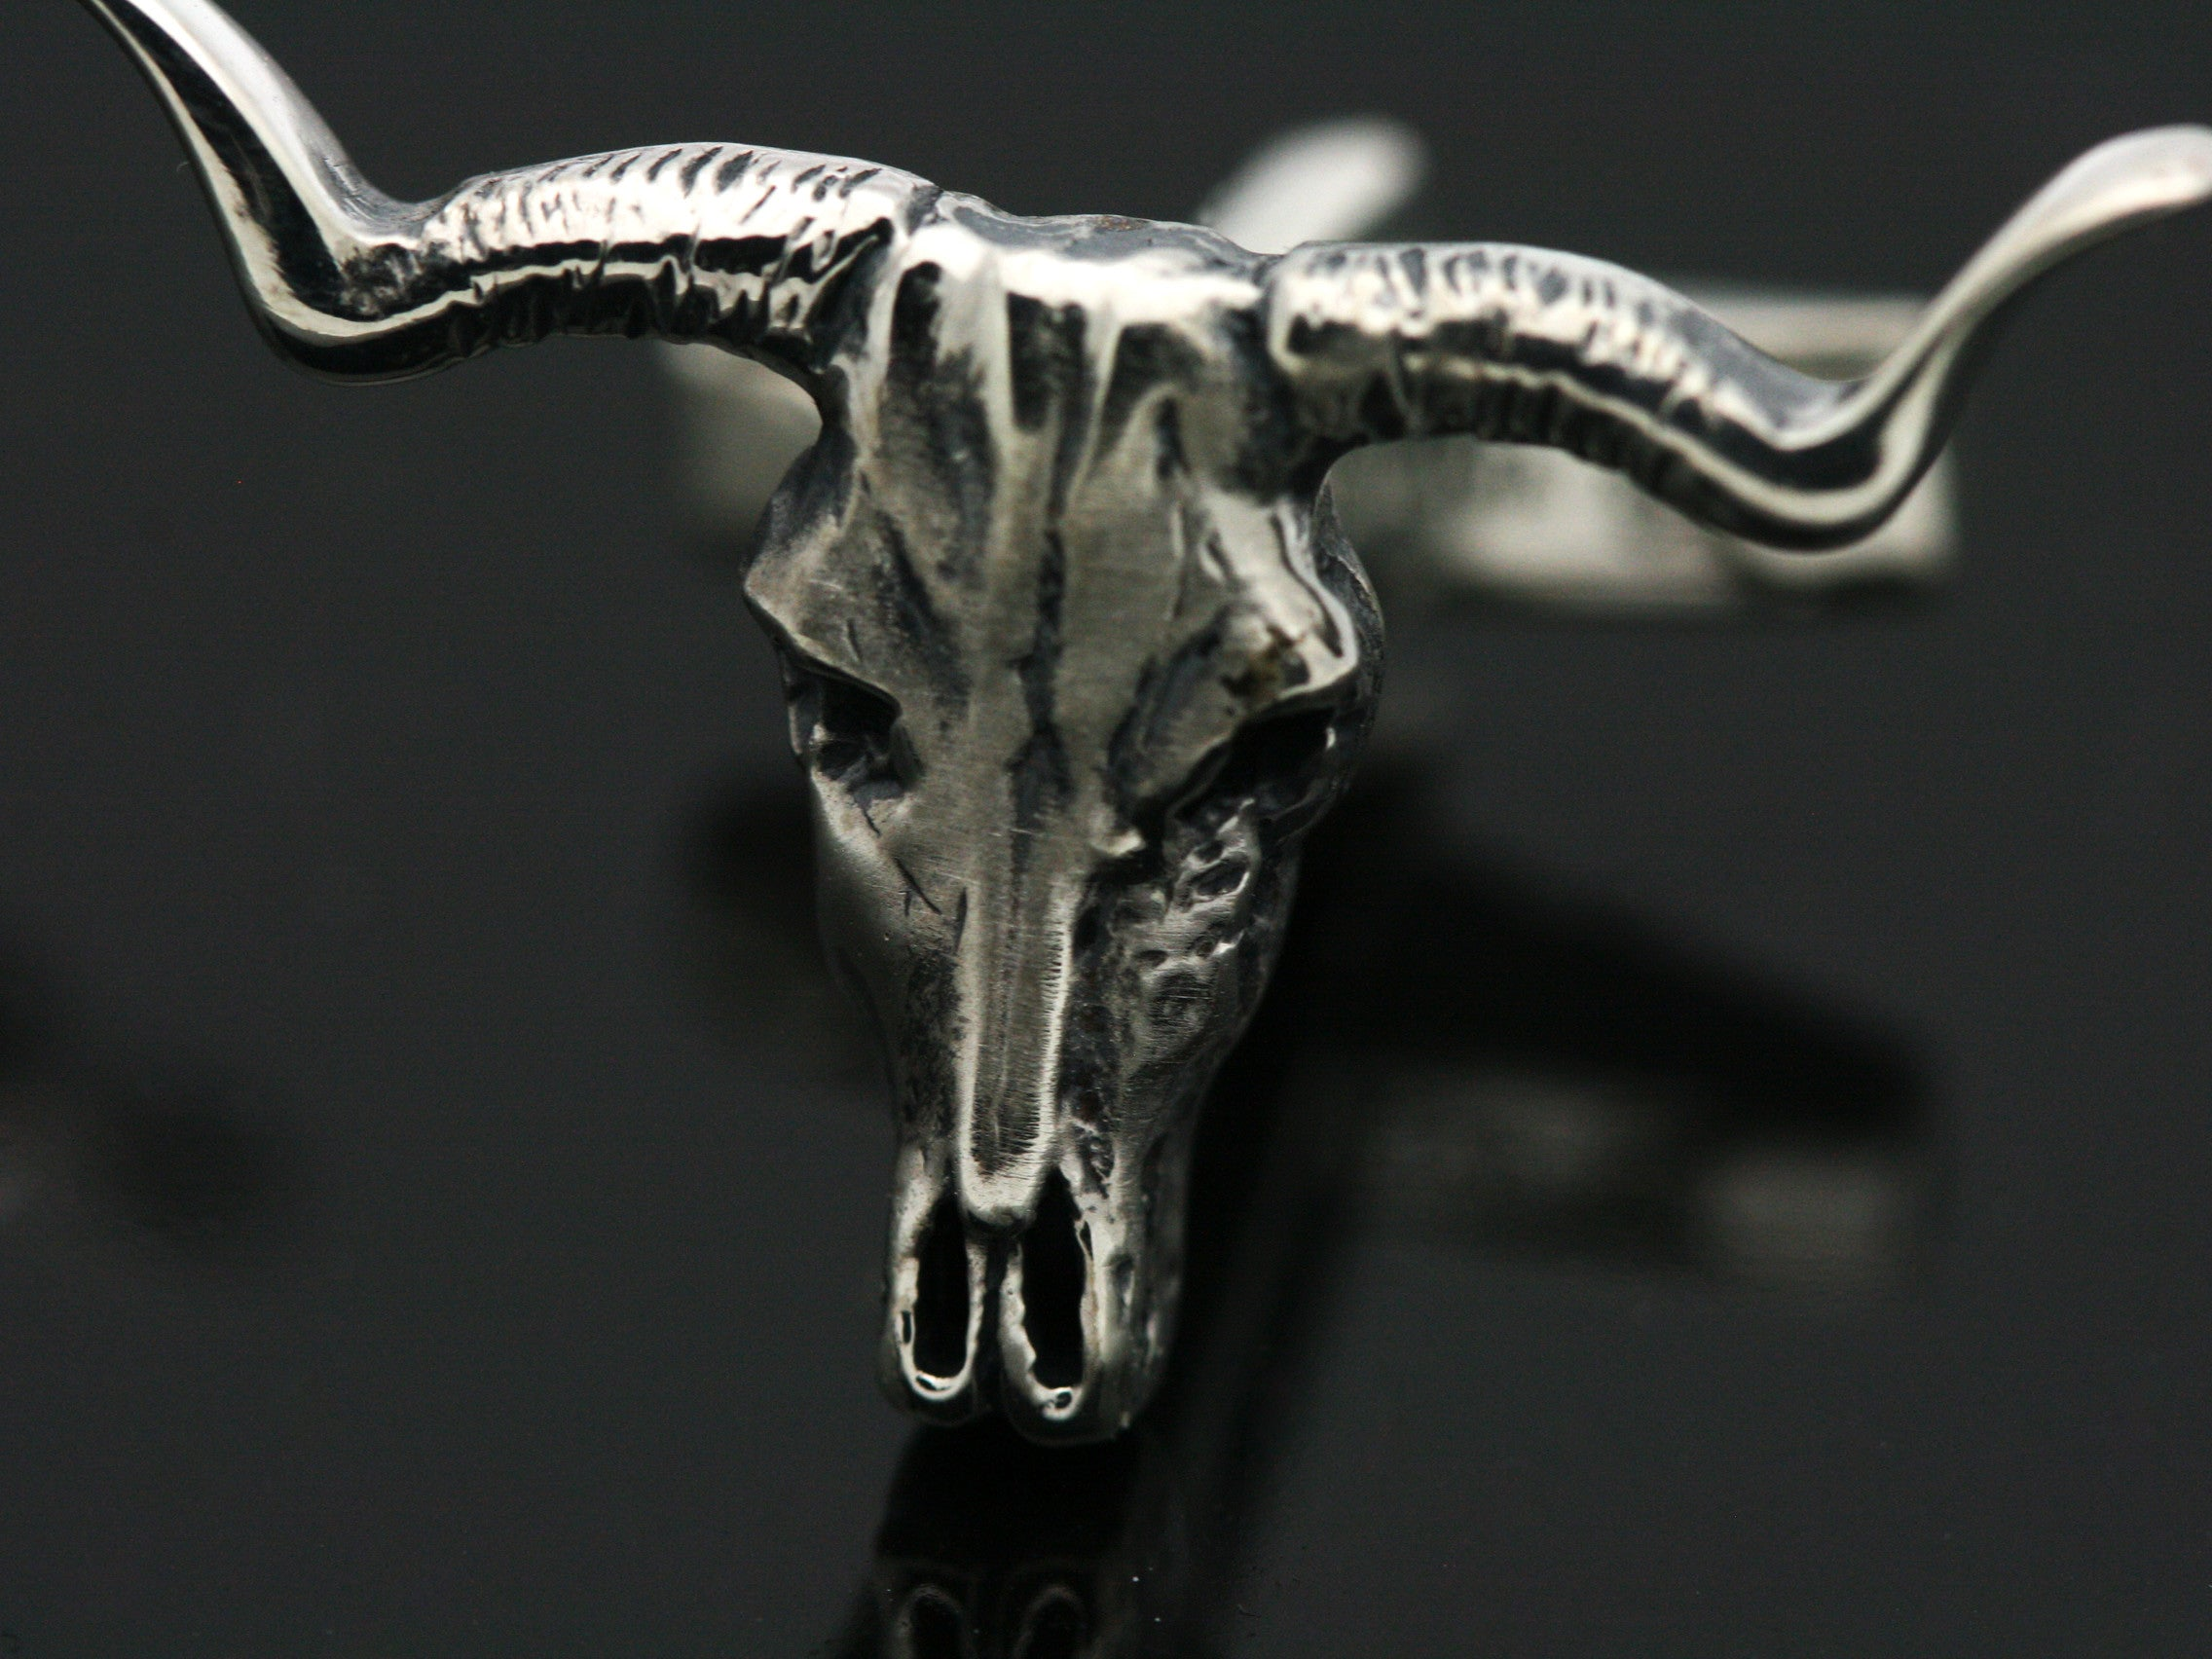 The Longhorn Skull Cufflinks